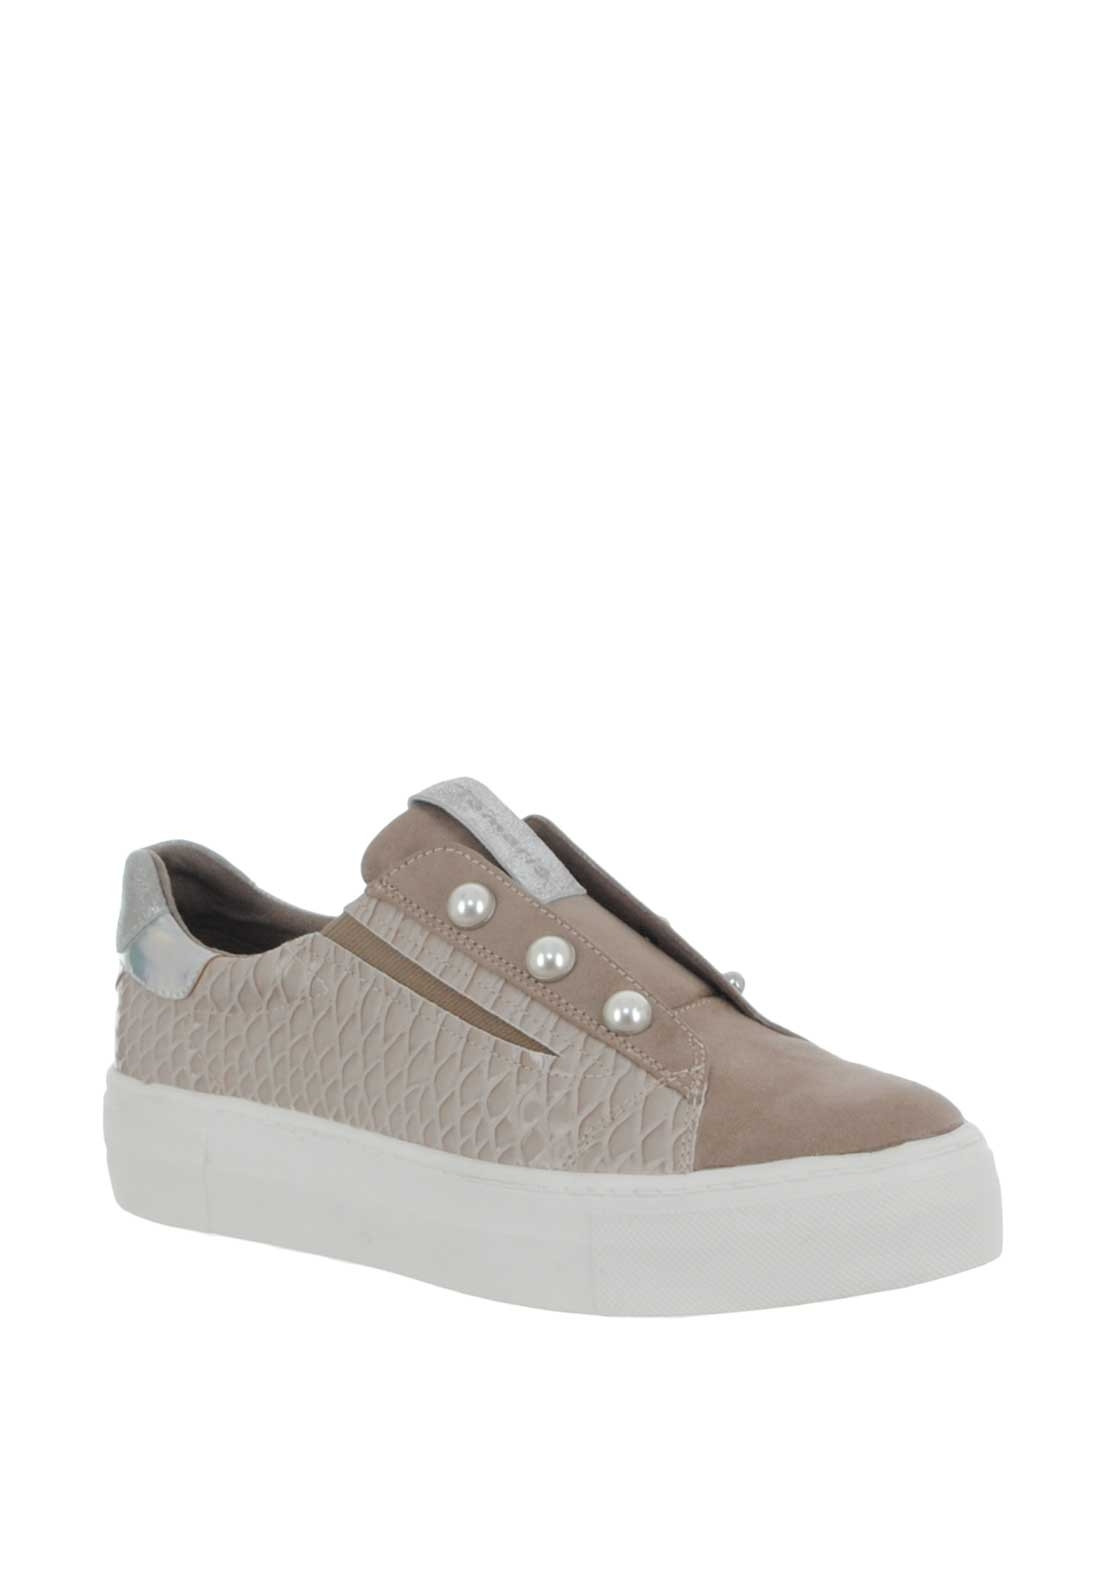 Tamaris Reptile Platform Slip on Trainers, Taupe